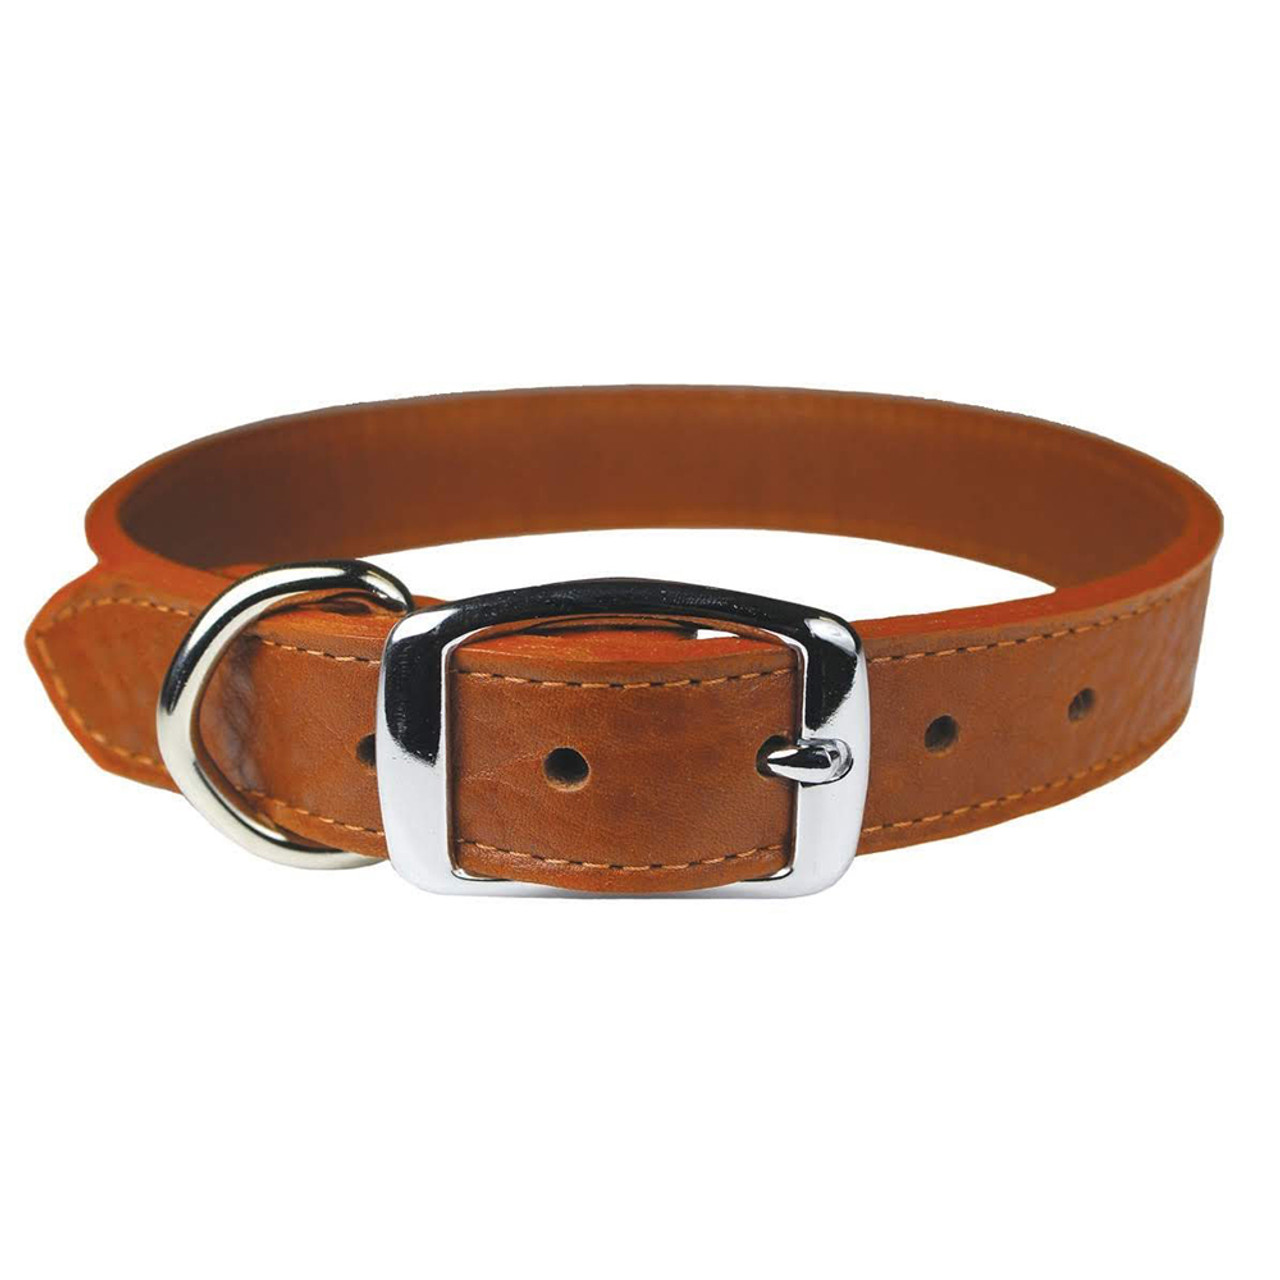 Luxe Leather Dog Collar